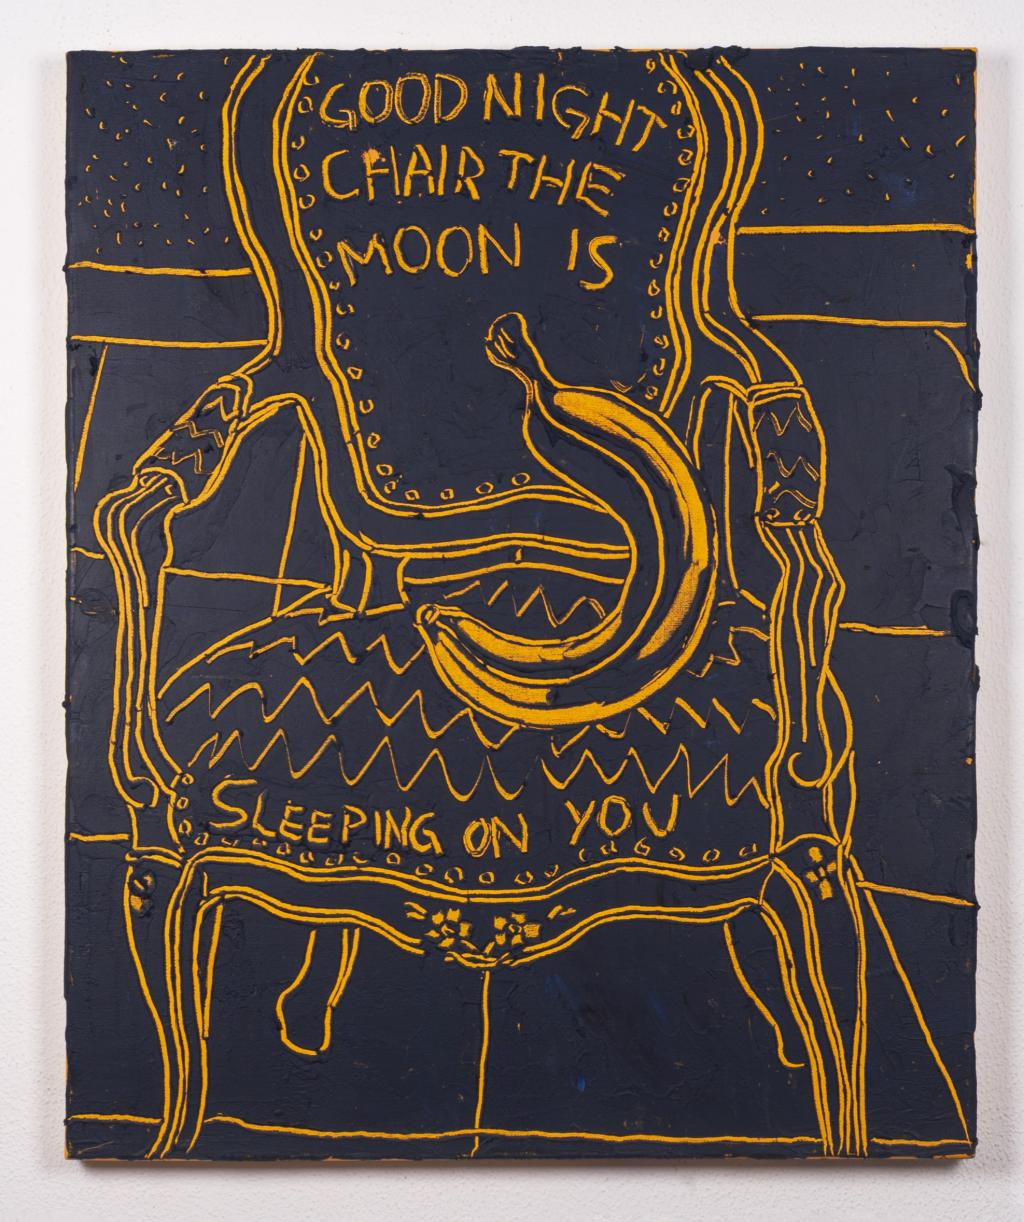 Good night, chair - the moon is sleeping on you